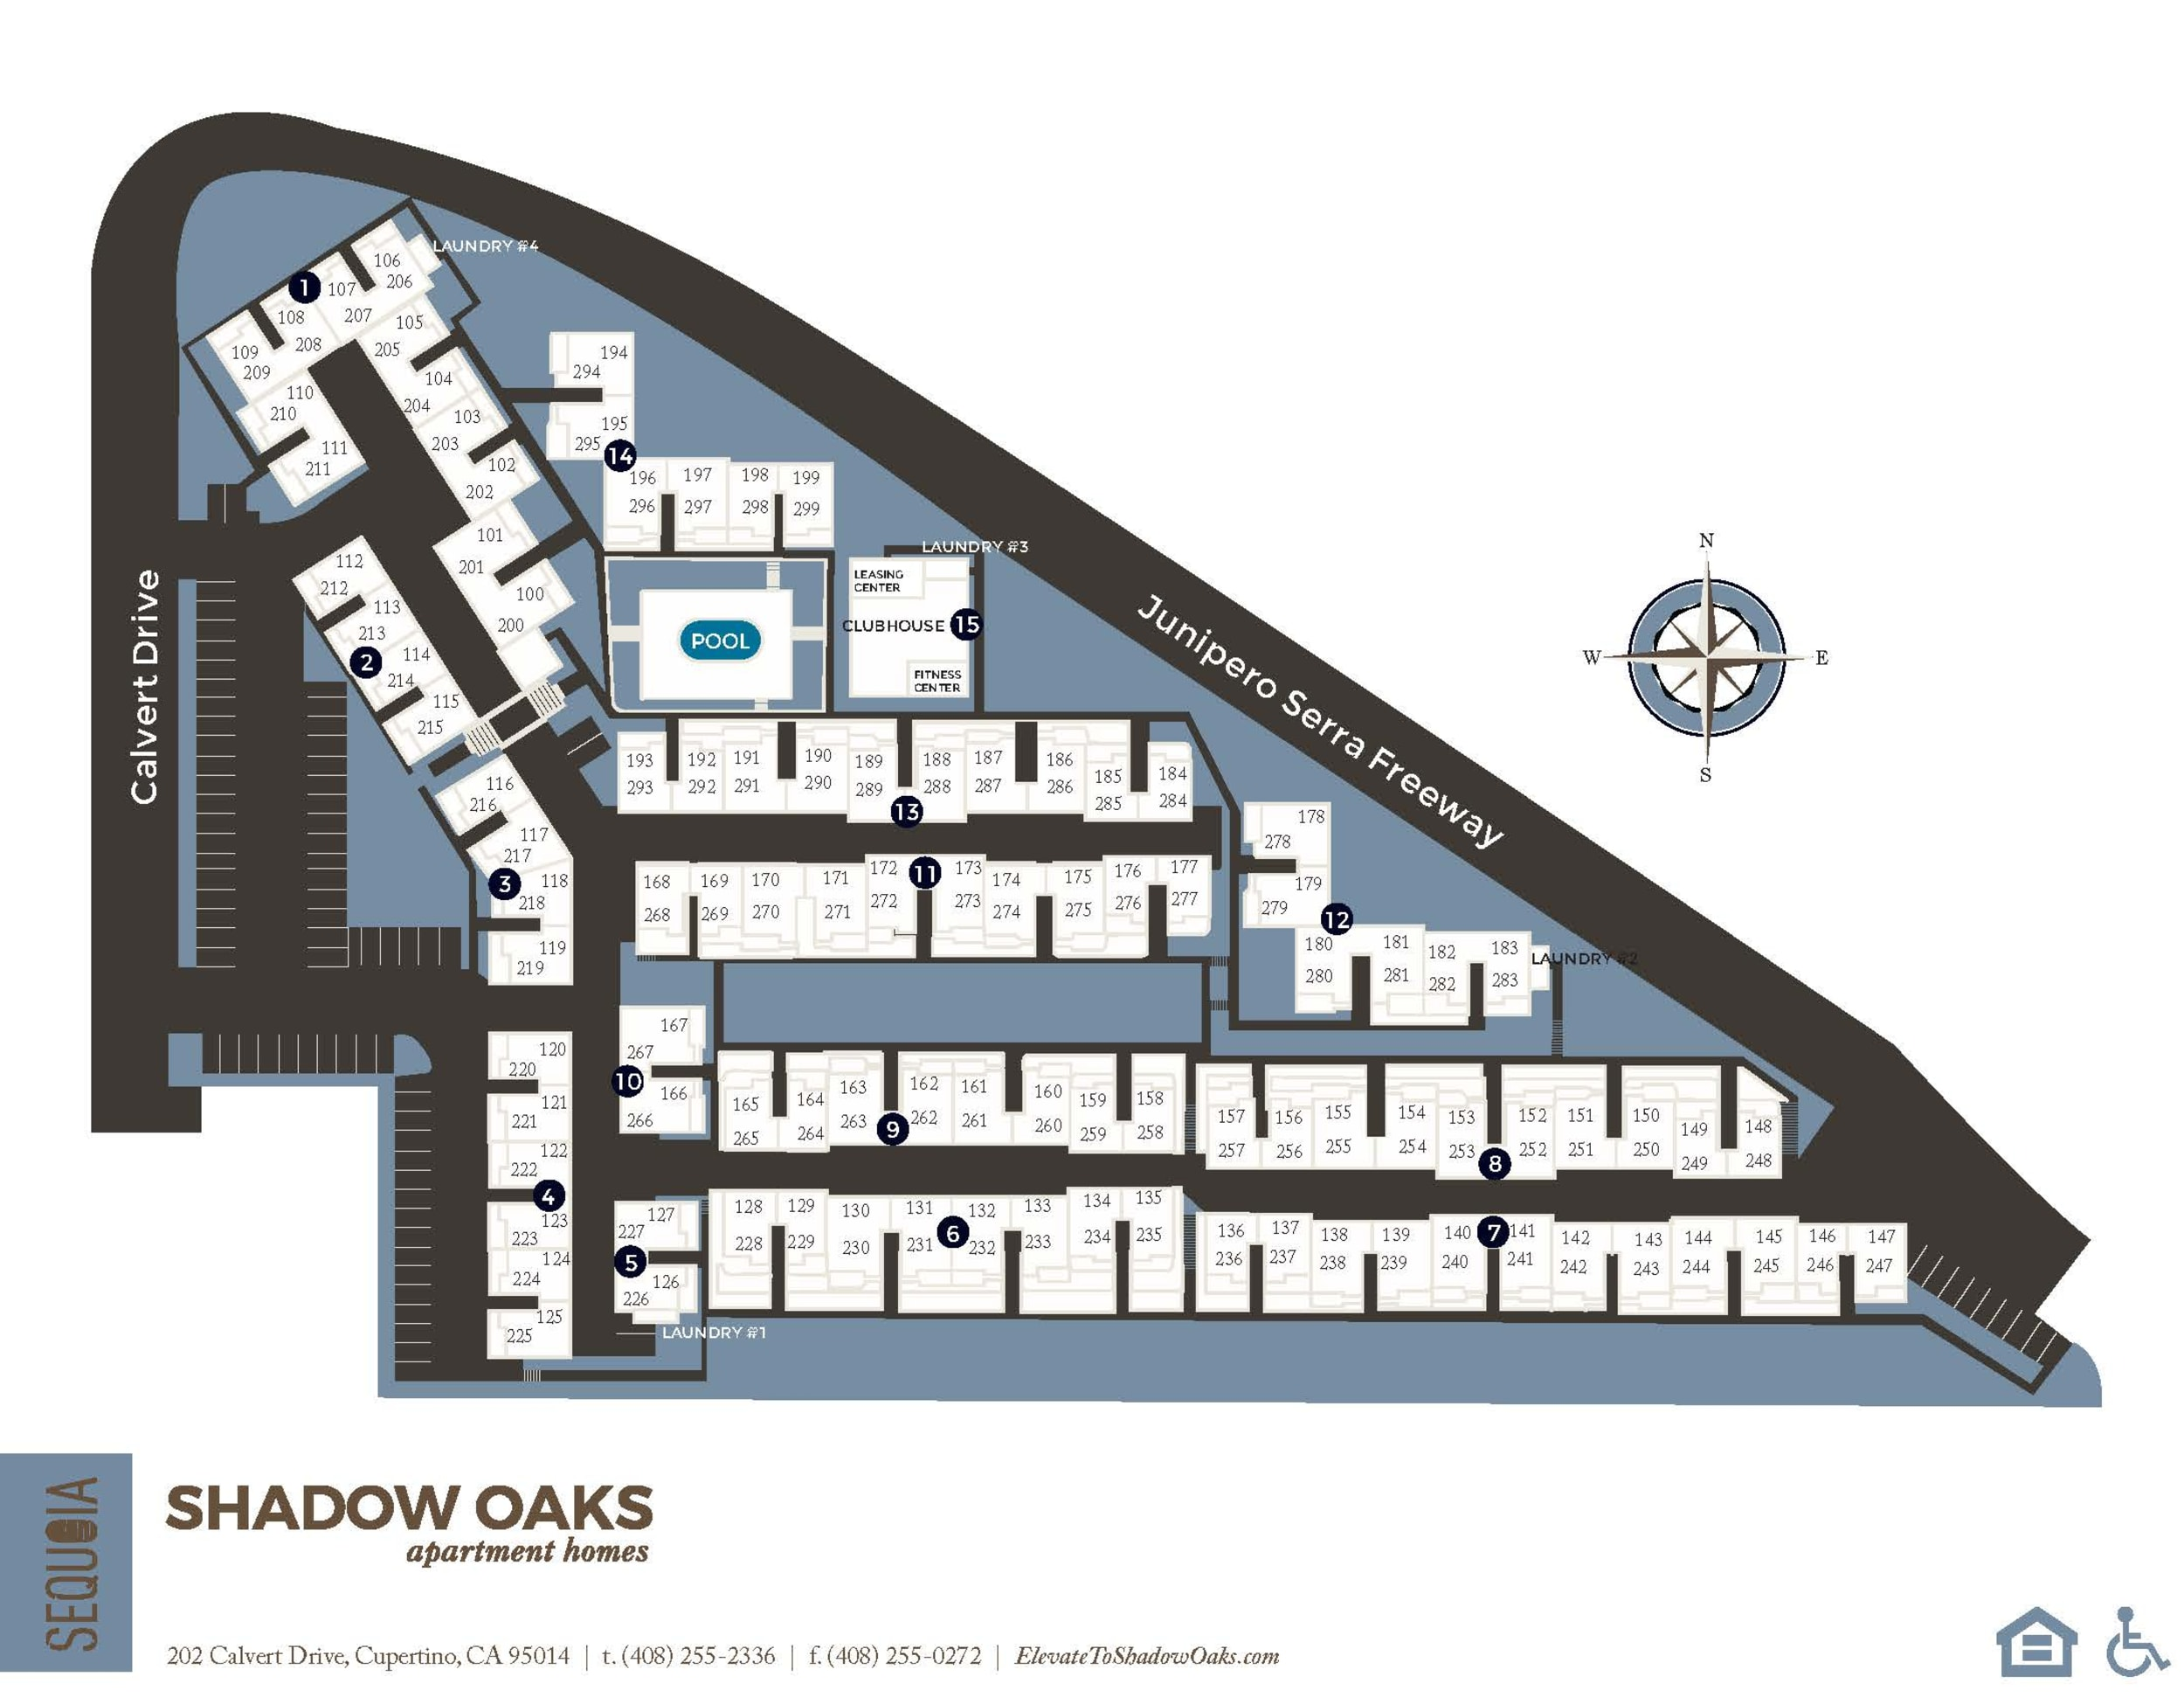 Community site map for Shadow Oaks Apartment Homes in Cupertino, California